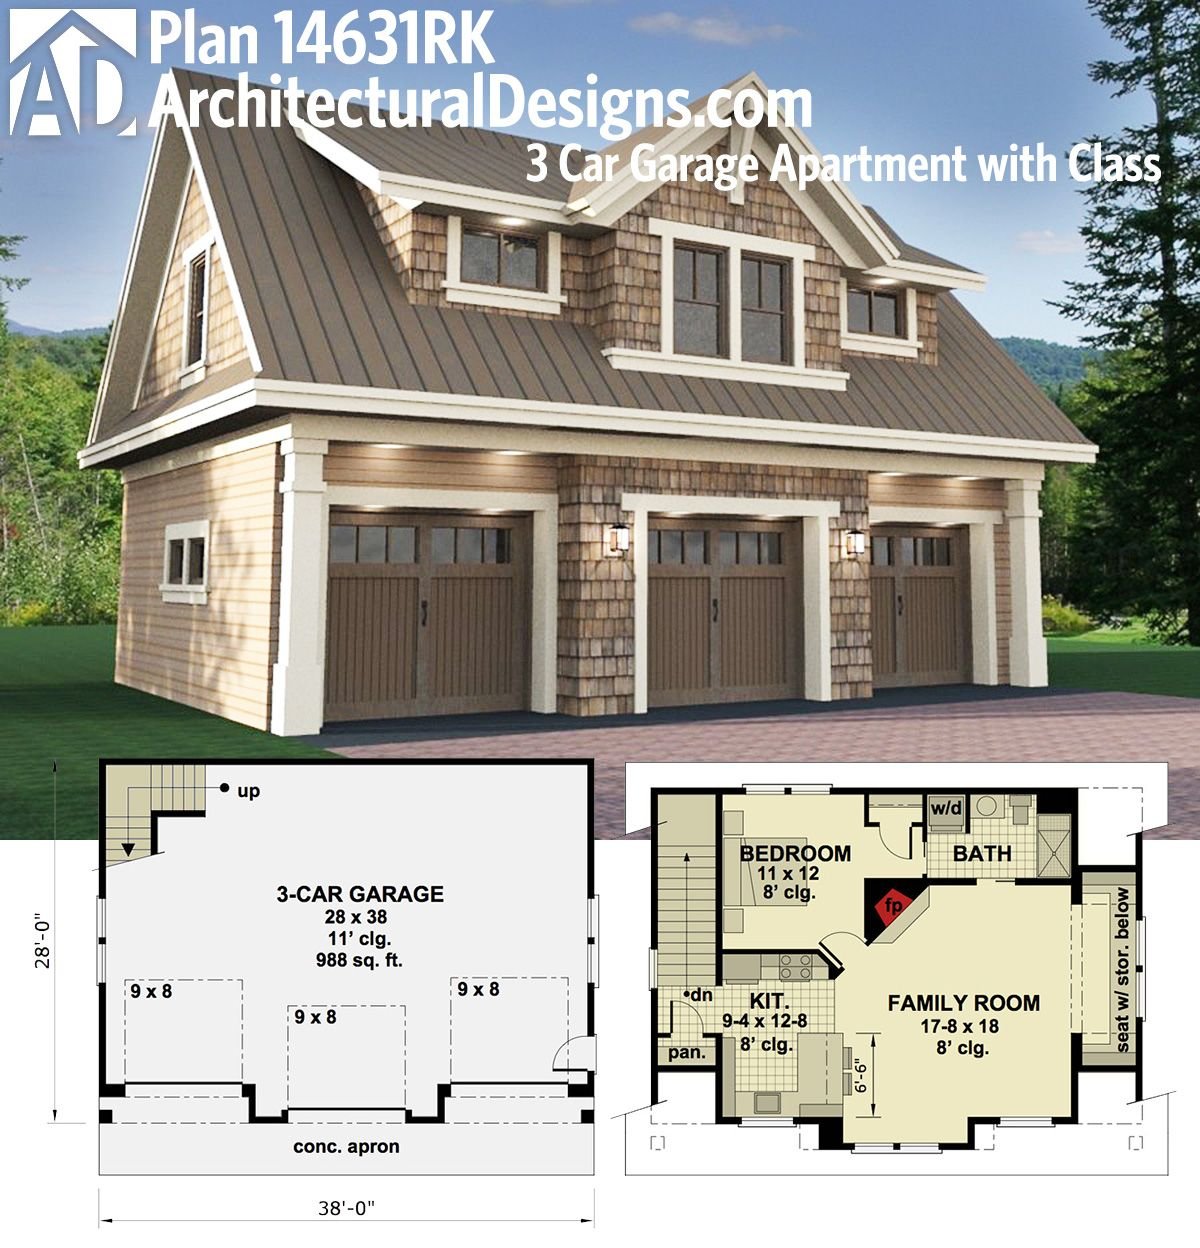 Plan 14631rk 3 car garage apartment with class carriage for Garage with apartment above kits